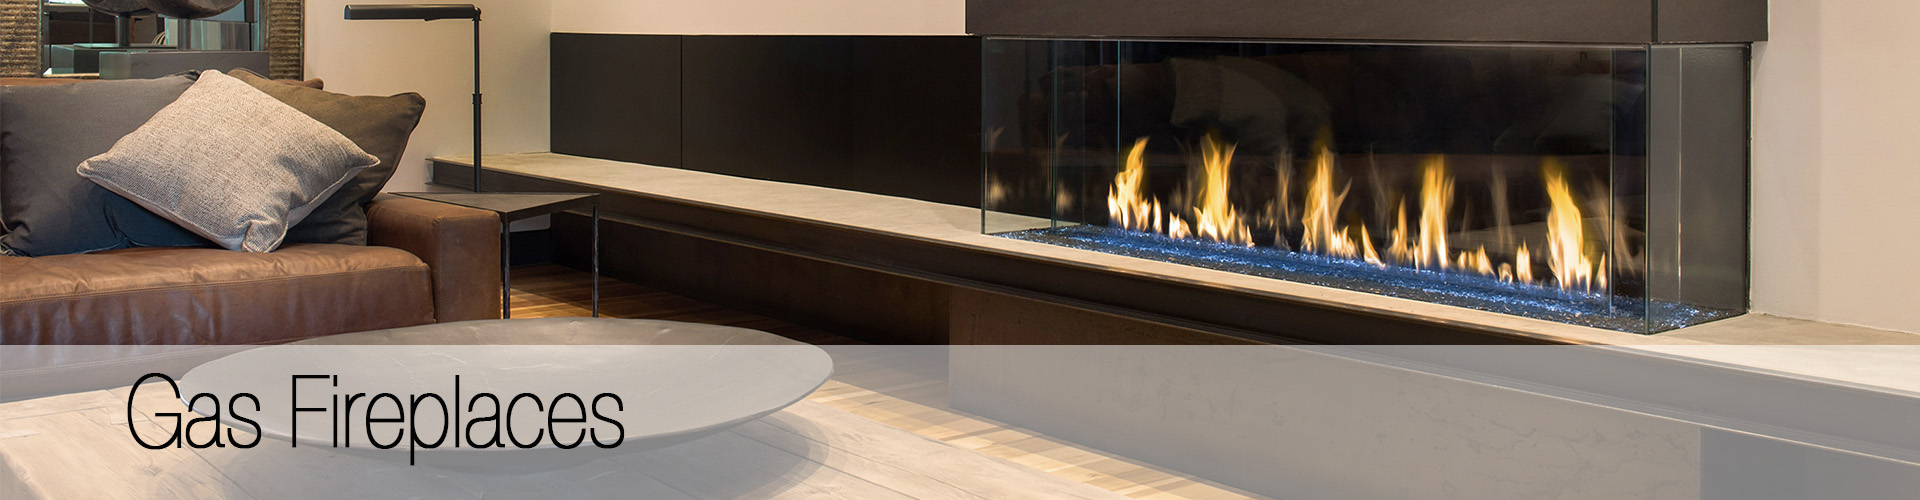 Direct Vent Gas Fireplace Ratings Gas Fireplaces The Fireplace Place Fairfield Nj